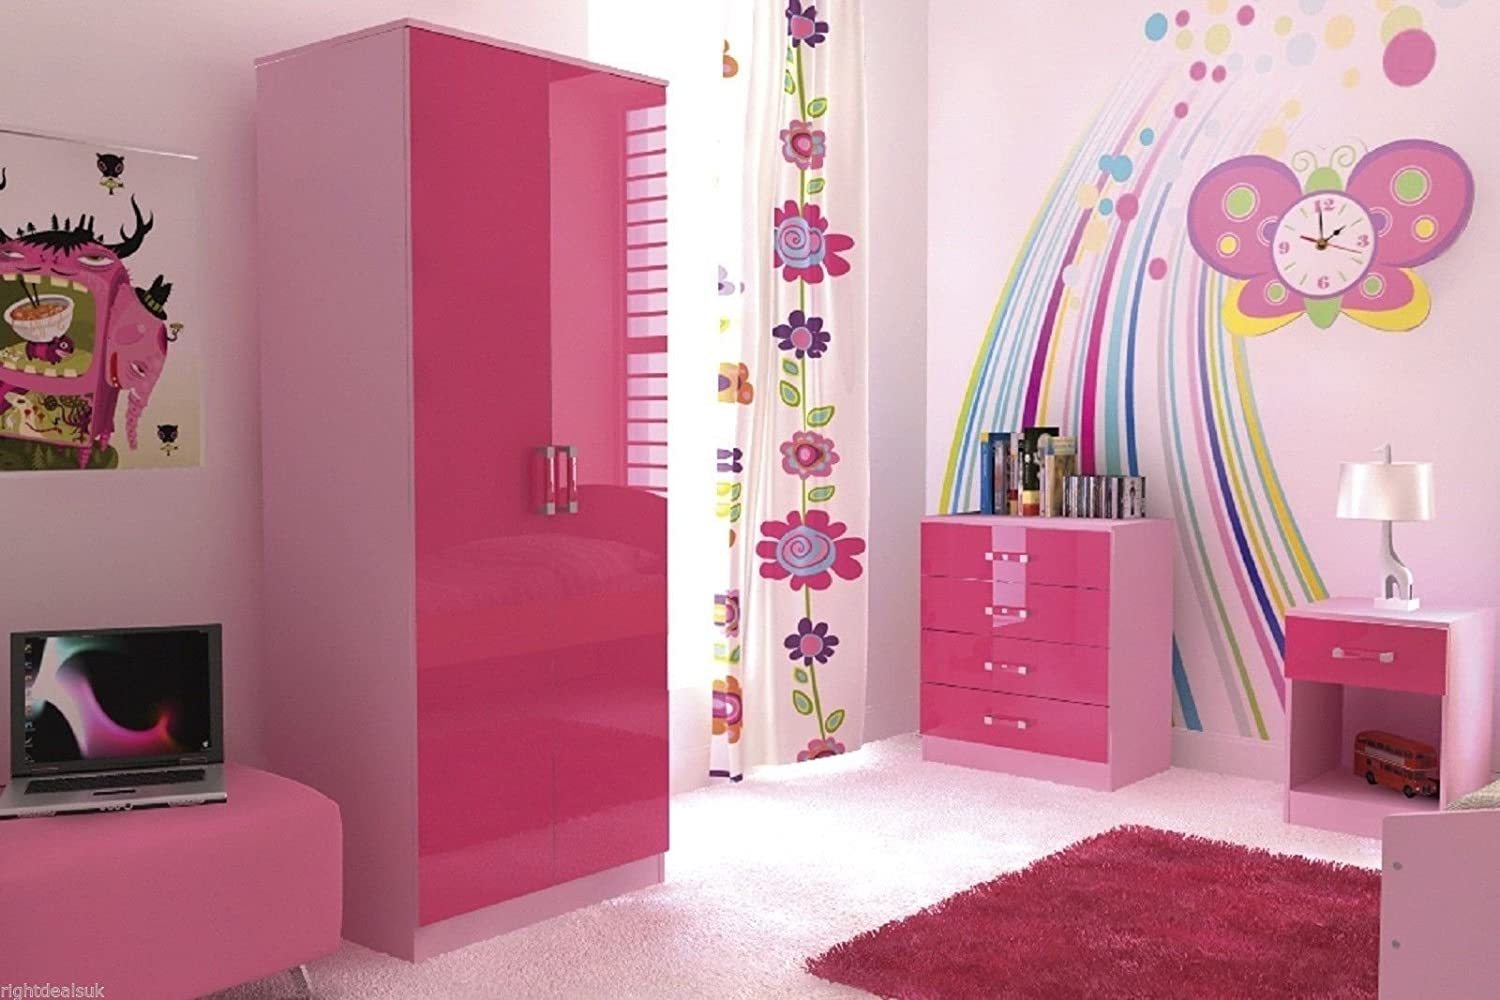 Ottawa High Gloss Pink Bedroom Furniture Set  Amazon co uk  Kitchen   HomeOttawa High Gloss Pink Bedroom Furniture Set  Amazon co uk  . Pink Bedroom Set. Home Design Ideas